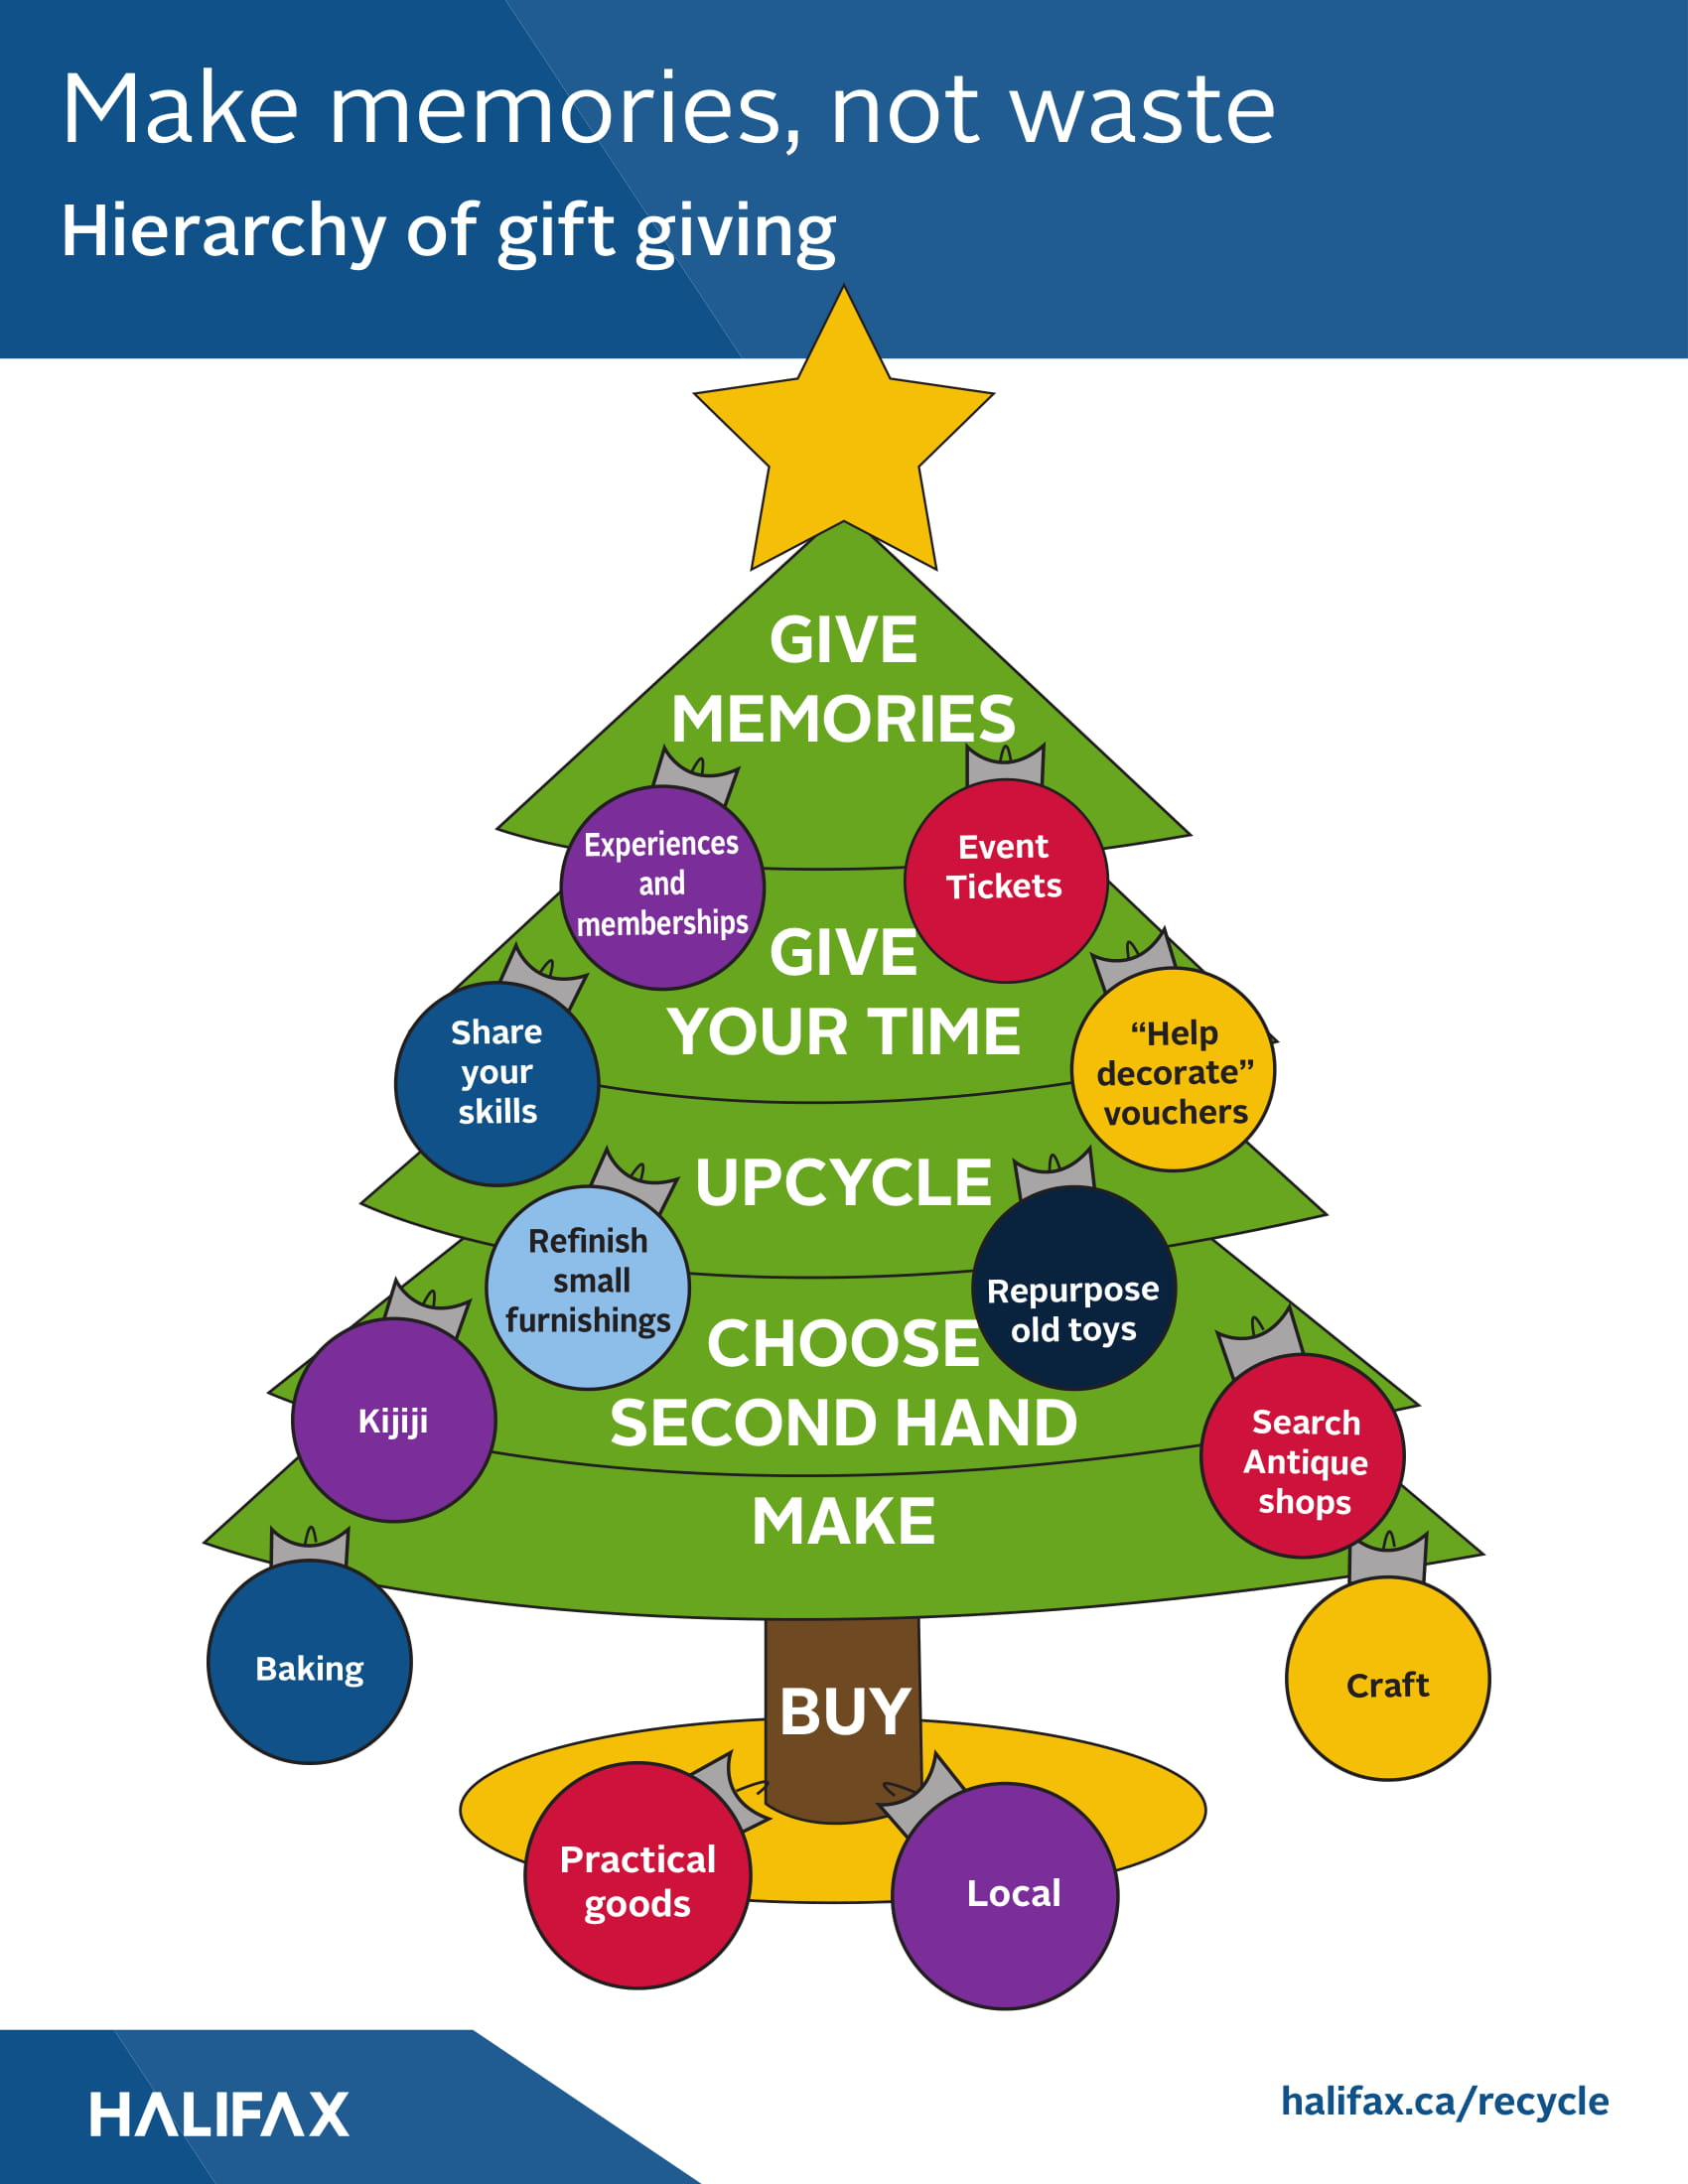 A hierarchy of gift giving options is presented in the shape of a Christmas Tree